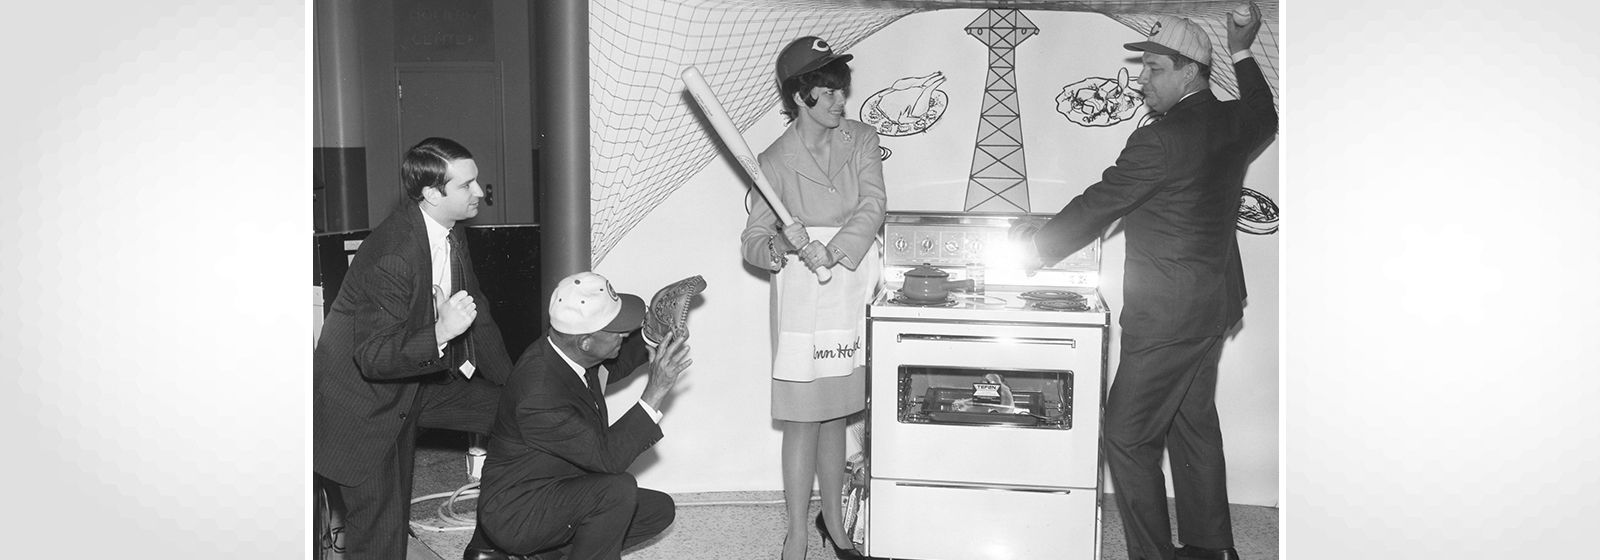 Retro photos: Why are they playing baseball indoors?